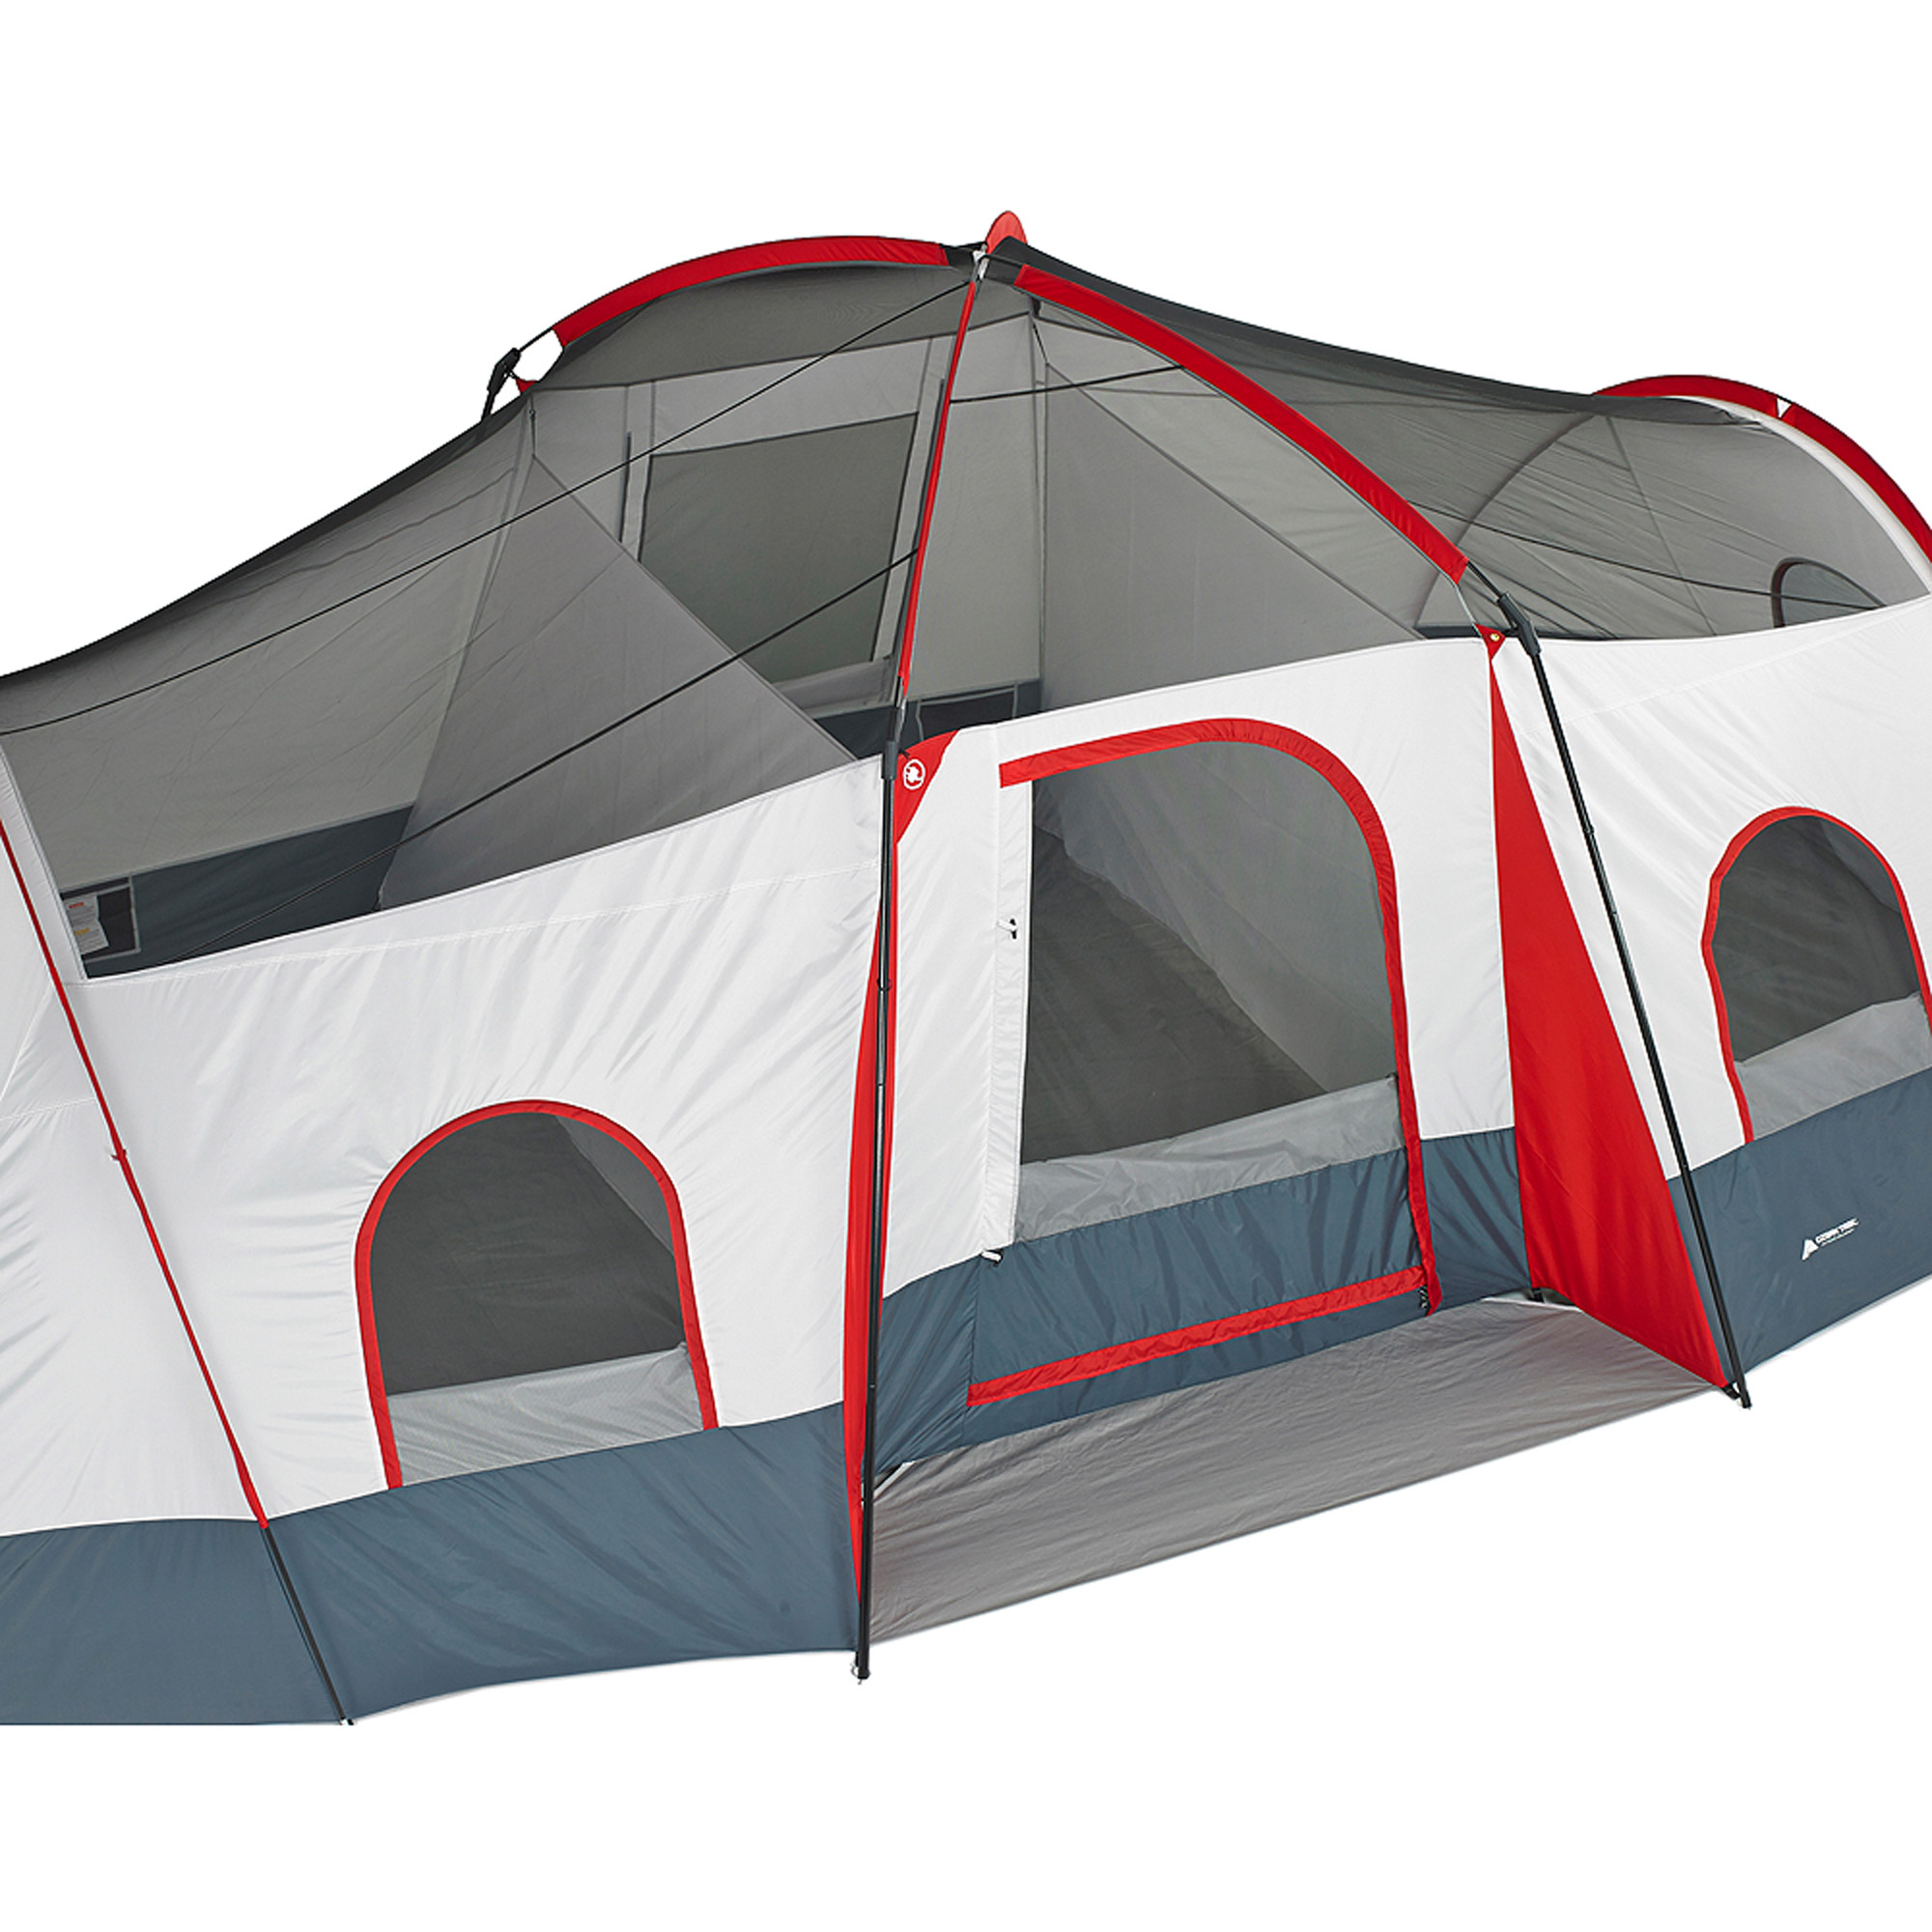 Ozark Trail 10 Man Tent Amp 12 Sleeper Tent With Screen